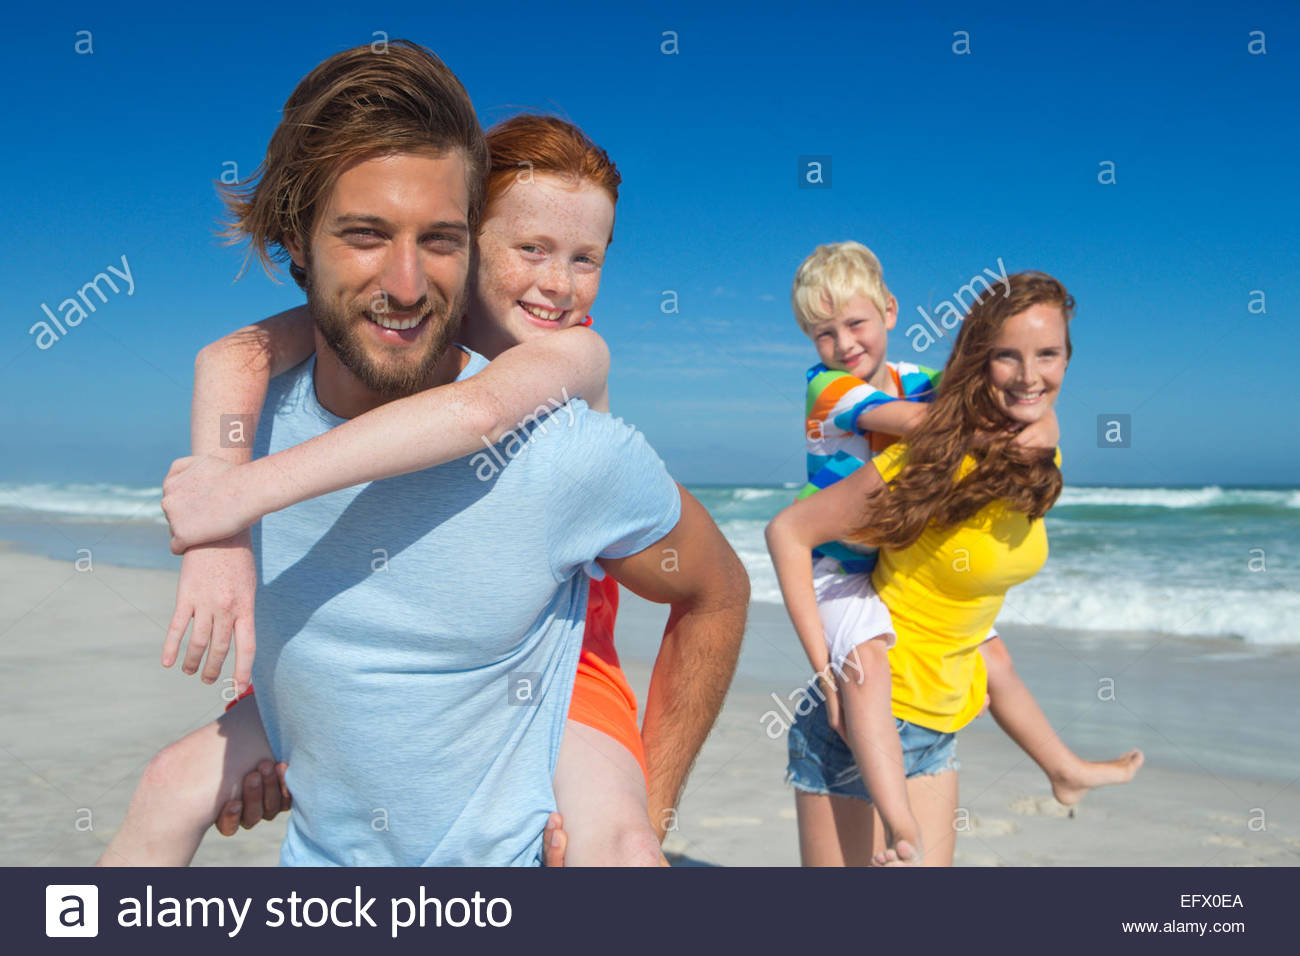 Mother and father, giving two children piggy back, on sunny beach - Stock Image